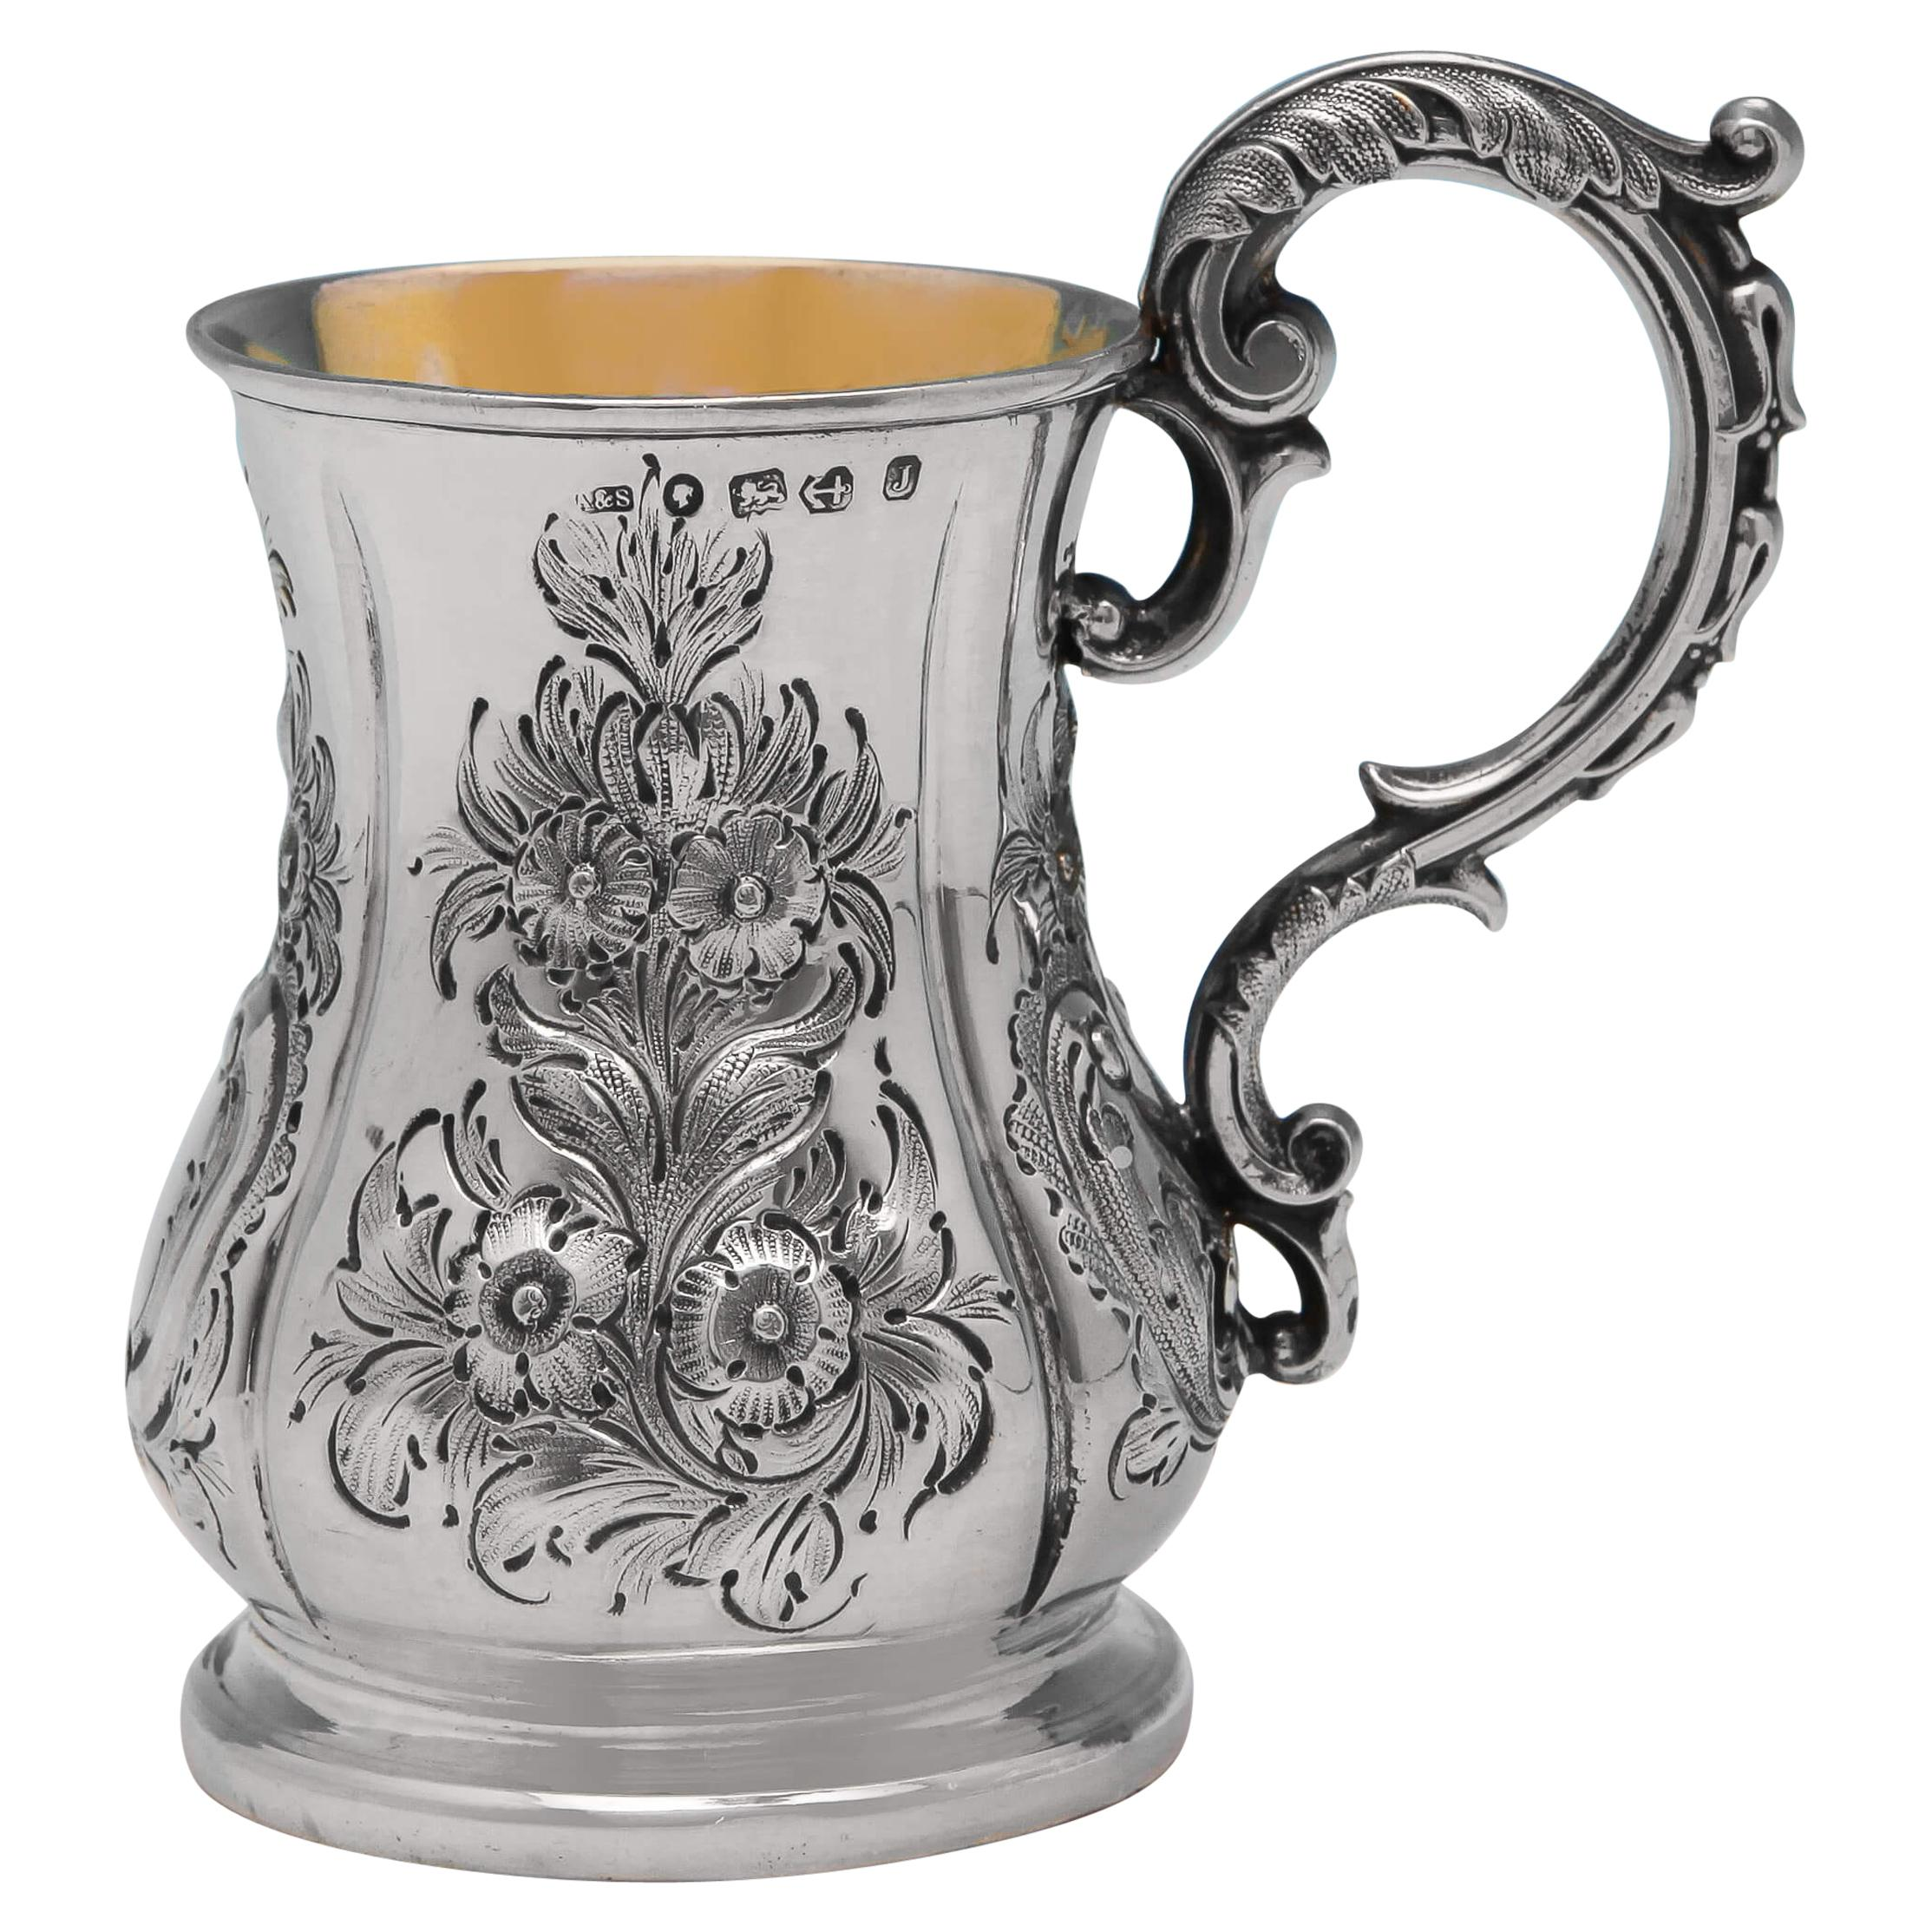 Chased Victorian Antique Sterling Silver Christening Mug by Aston & Sons in 1858